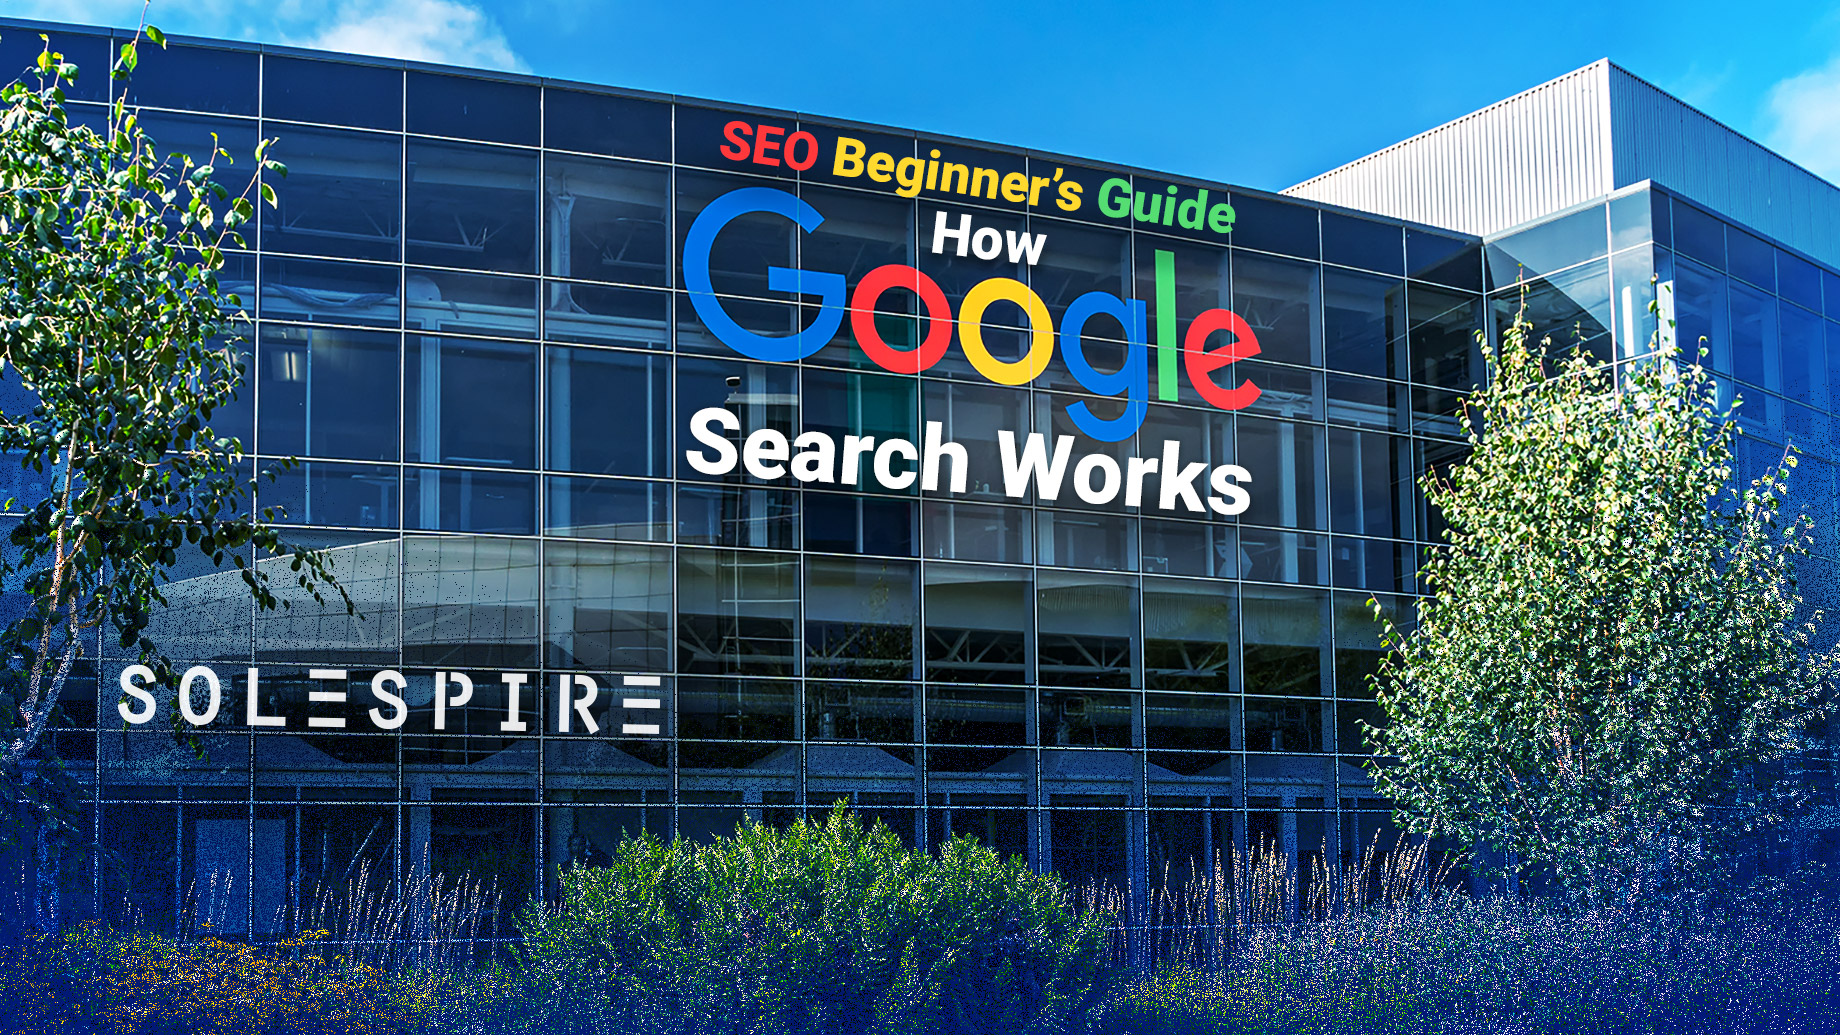 SEO Beginner's Guide - How Google Search Works with Crawling, Indexing, and Ranking